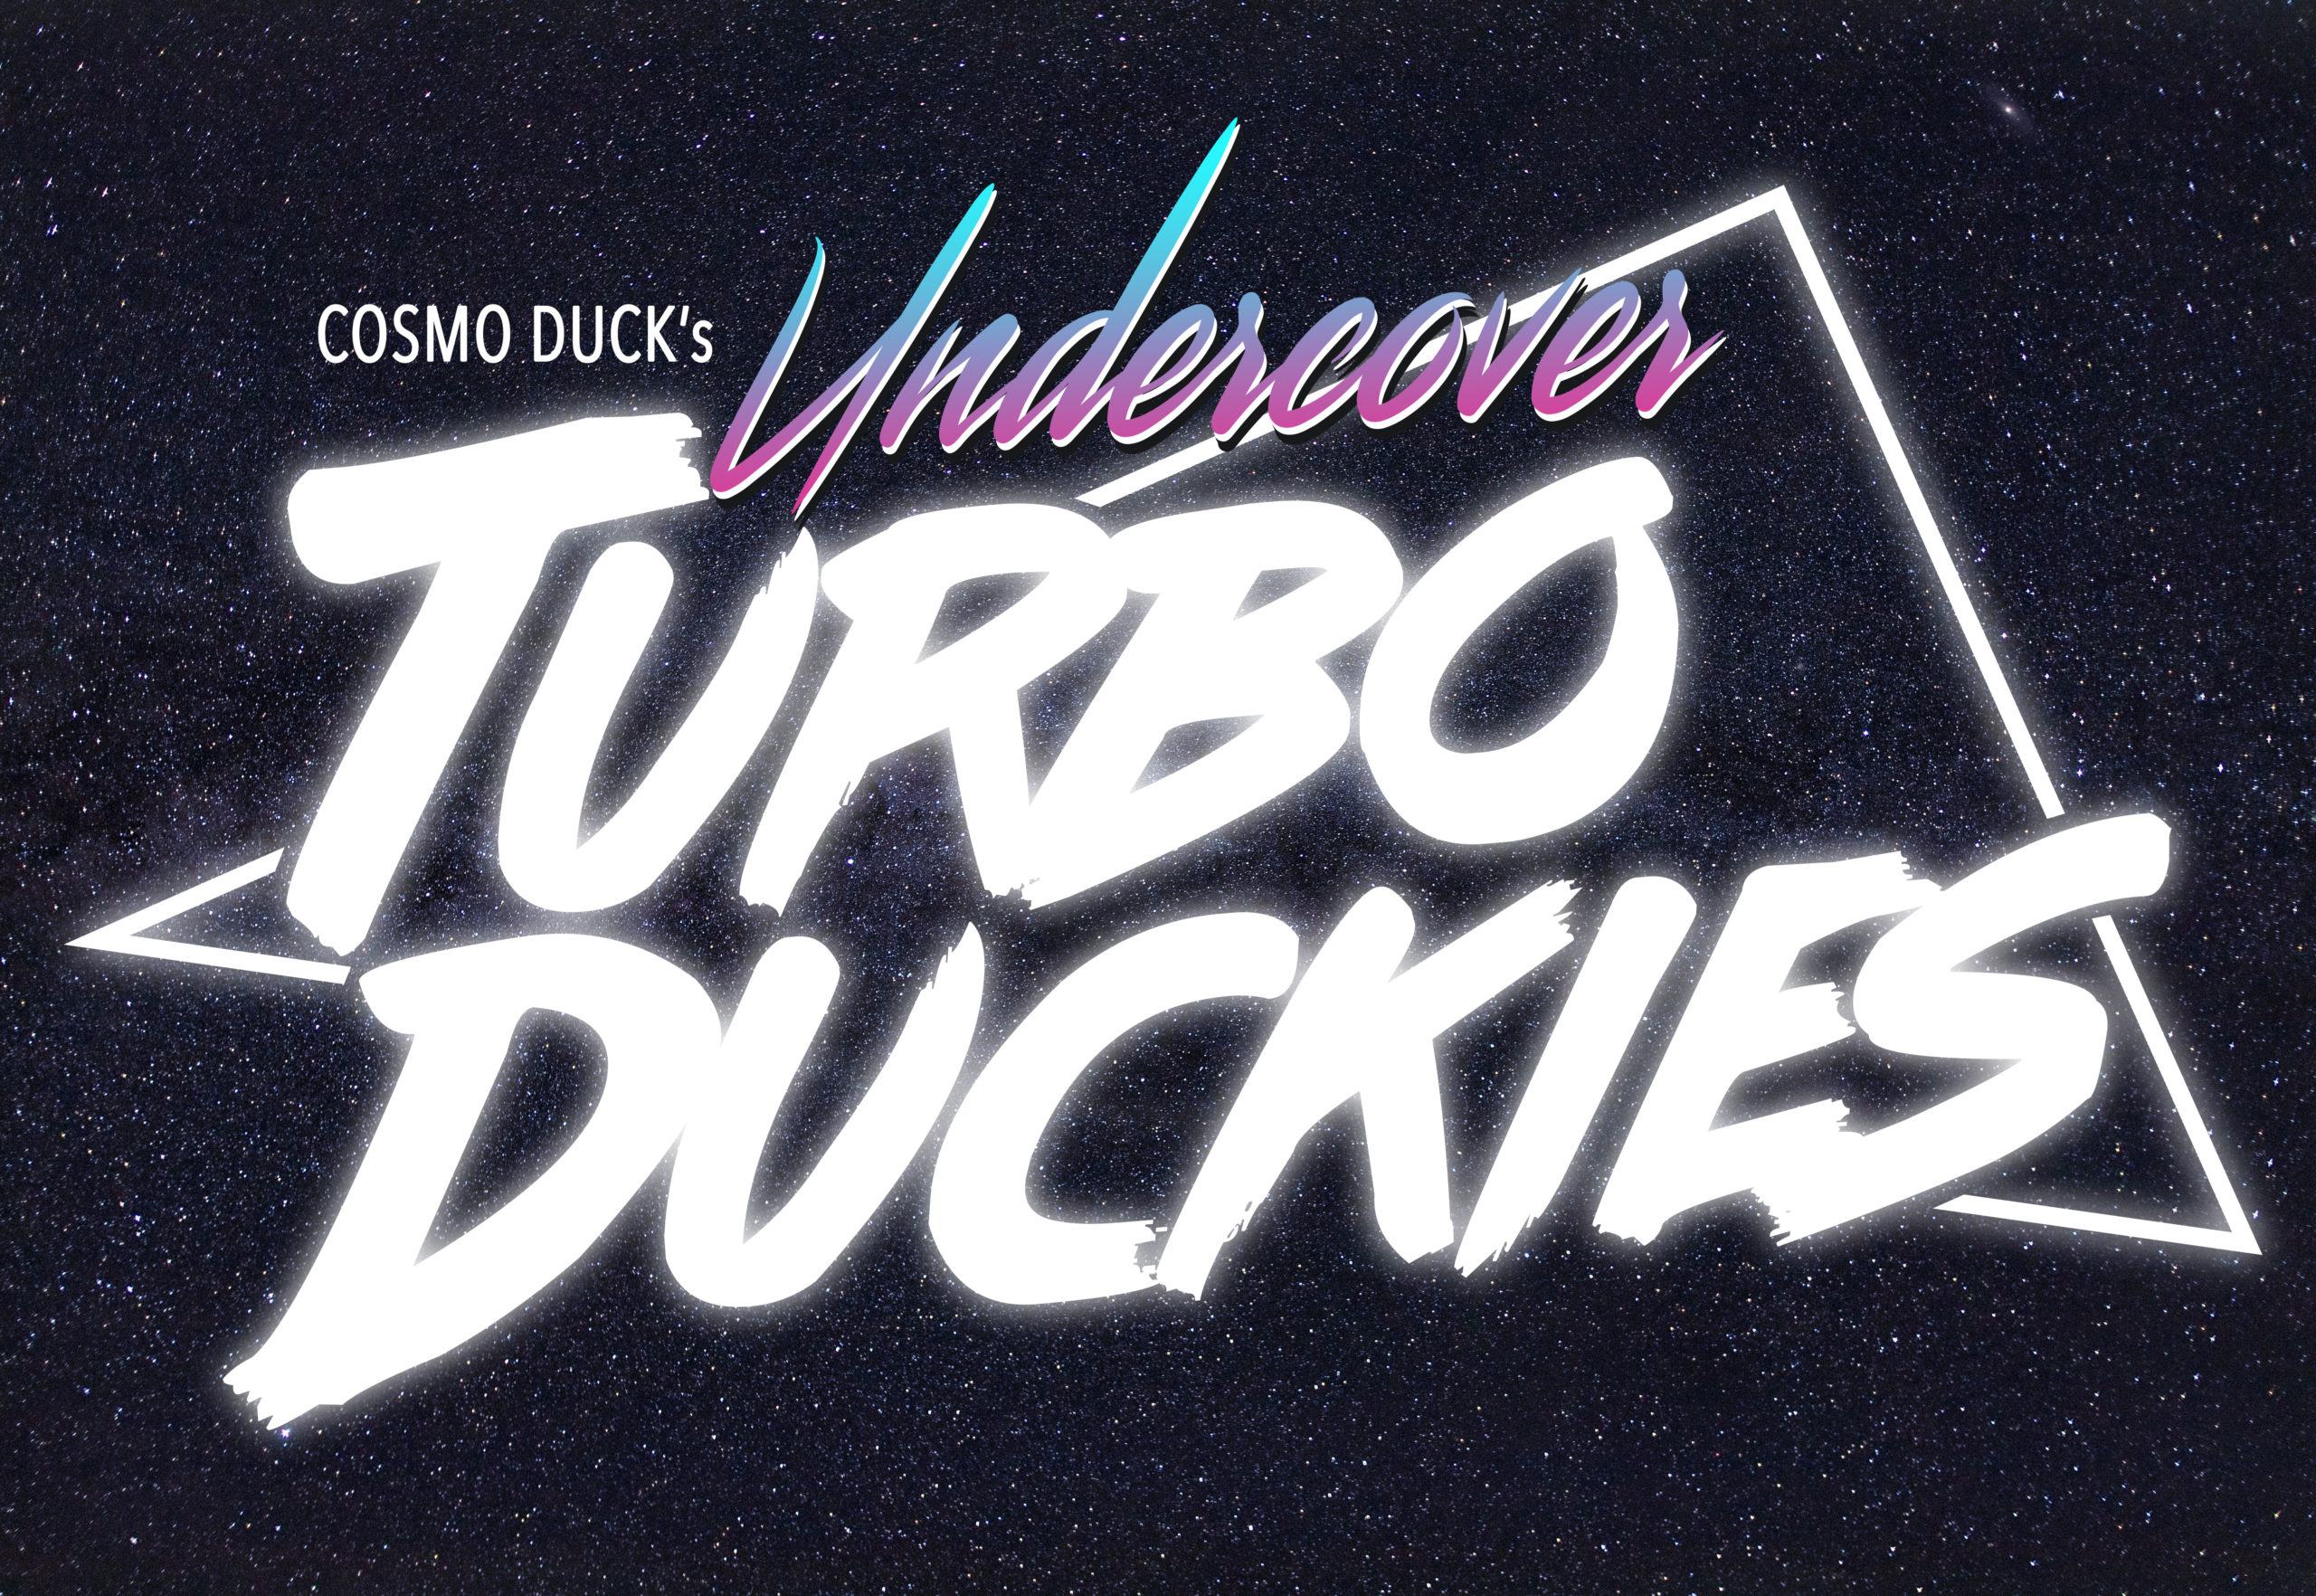 Bannière Turbo Duckies